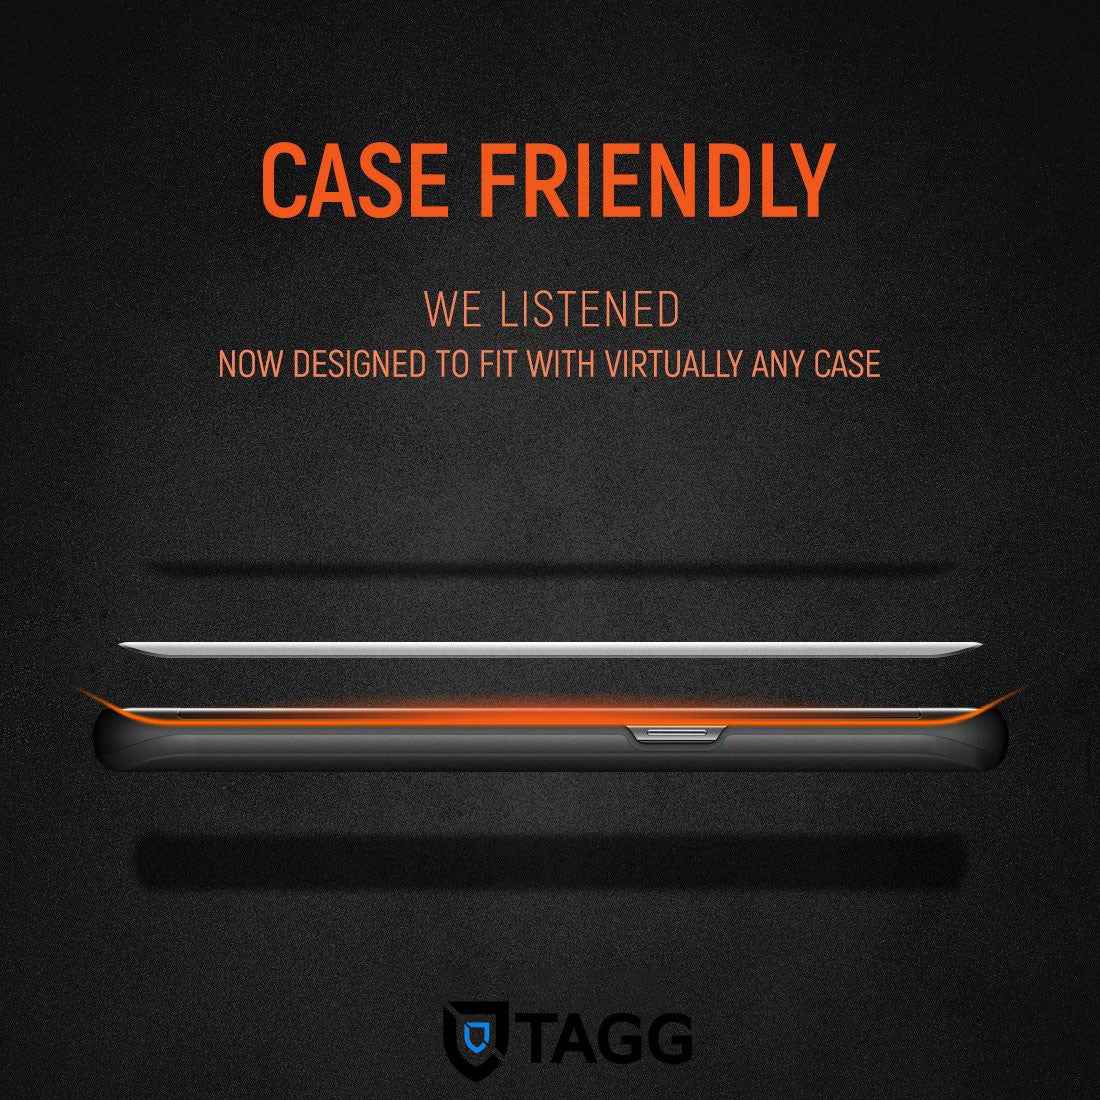 GENUINE TAGG 【Case Friendly】TEMPERED GLASS SCREEN PROTECTOR FOR Galaxy S8